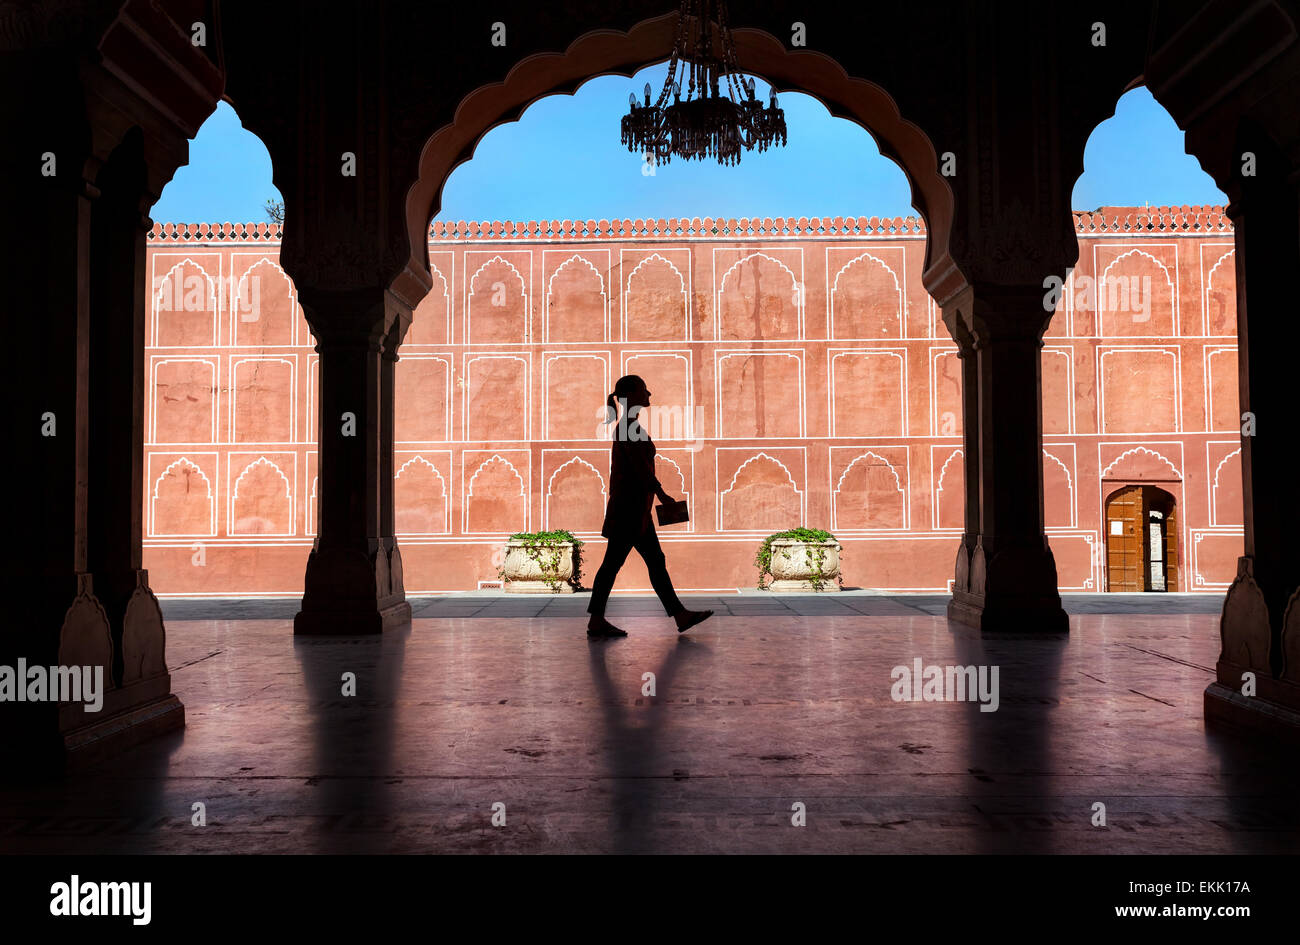 Woman silhouette with guidebook walking in the City Palace museum, Jaipur, Rajasthan, India - Stock Image